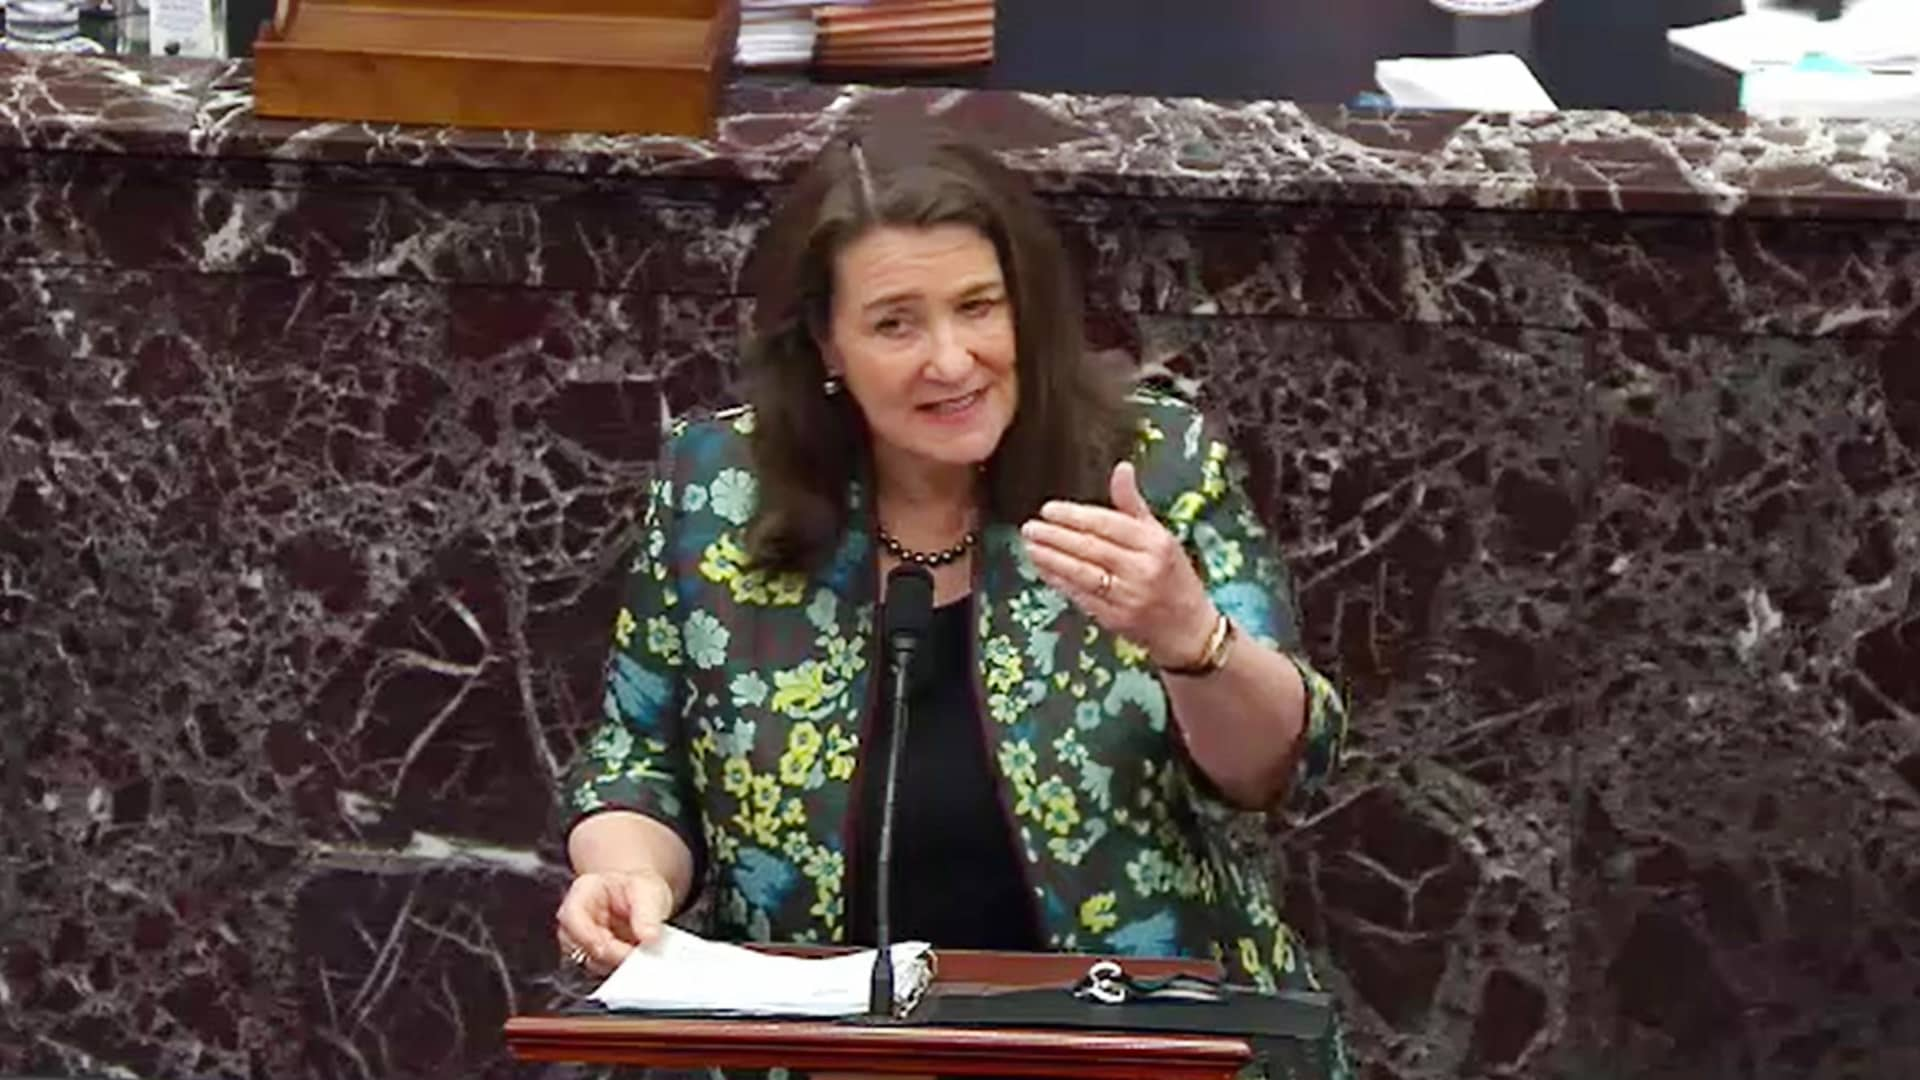 In this screenshot taken from a congress.gov webcast, Rep. Diana DeGette (D-CO) speaks on the third day of former President Donald Trump's second impeachment trial at the U.S. Capitol on February 11, 2021 in Washington, DC.